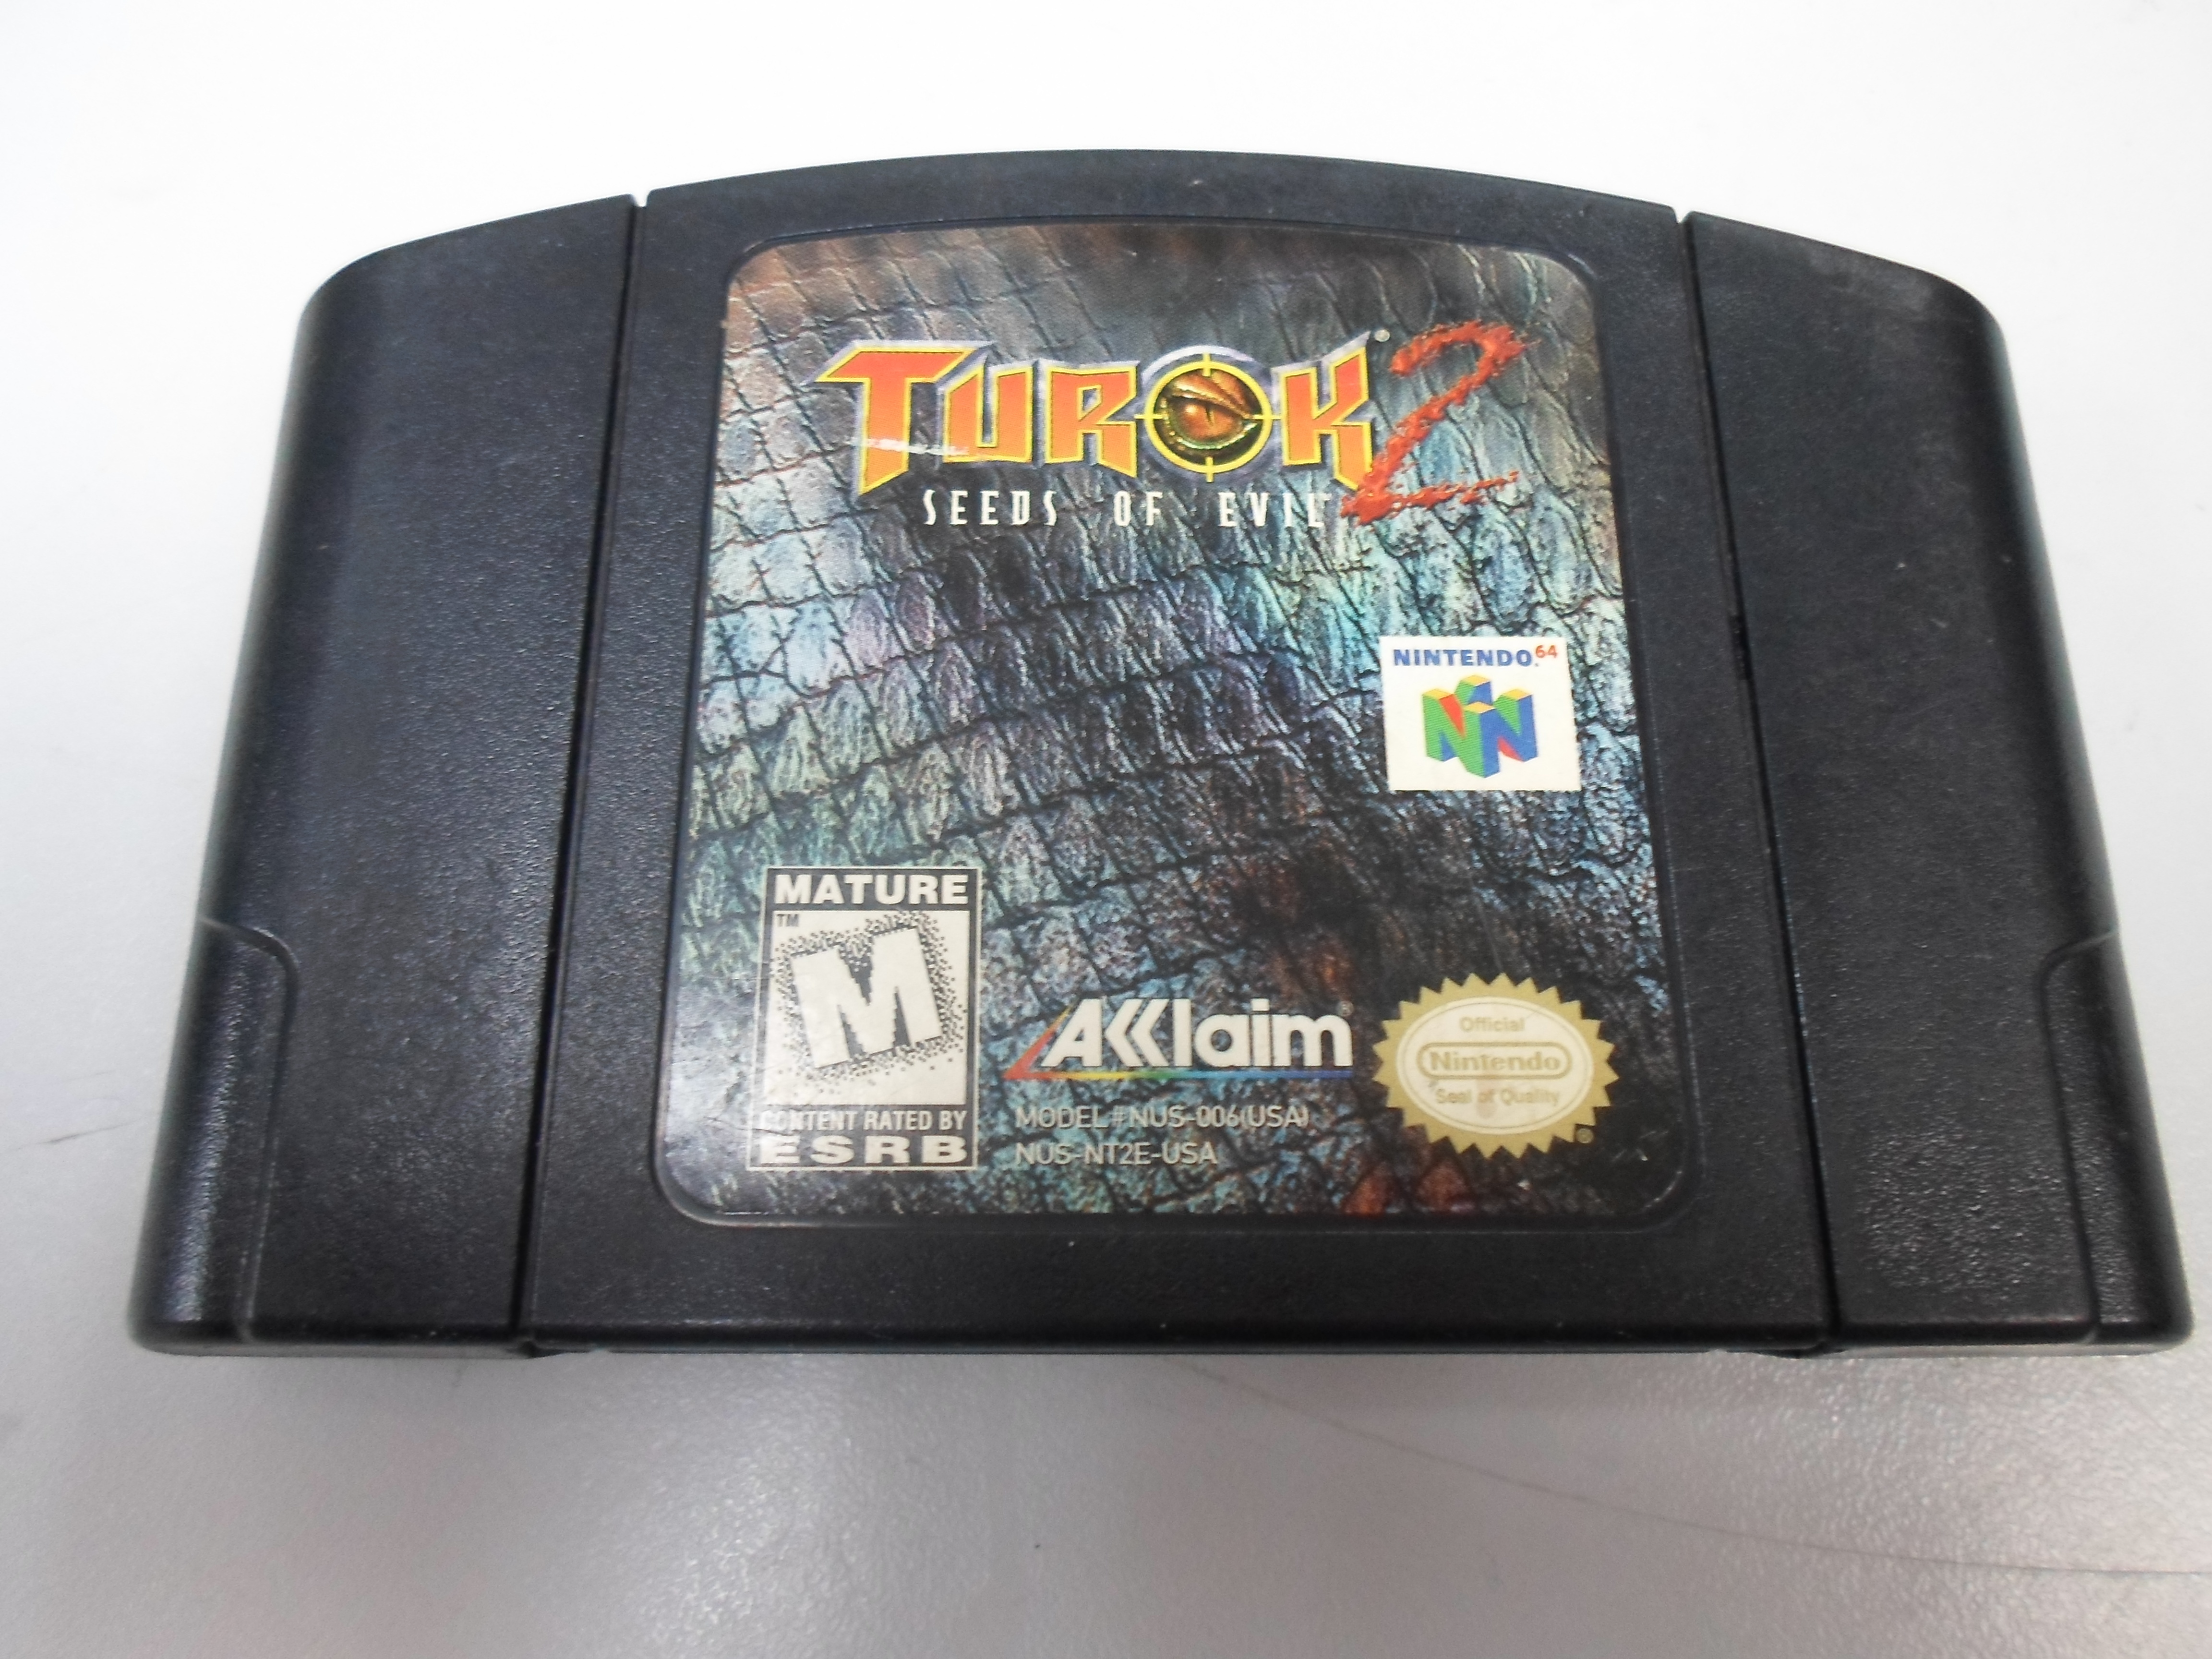 TUROK 2 NOT TESTED AS IS FOR NINTENDO 64